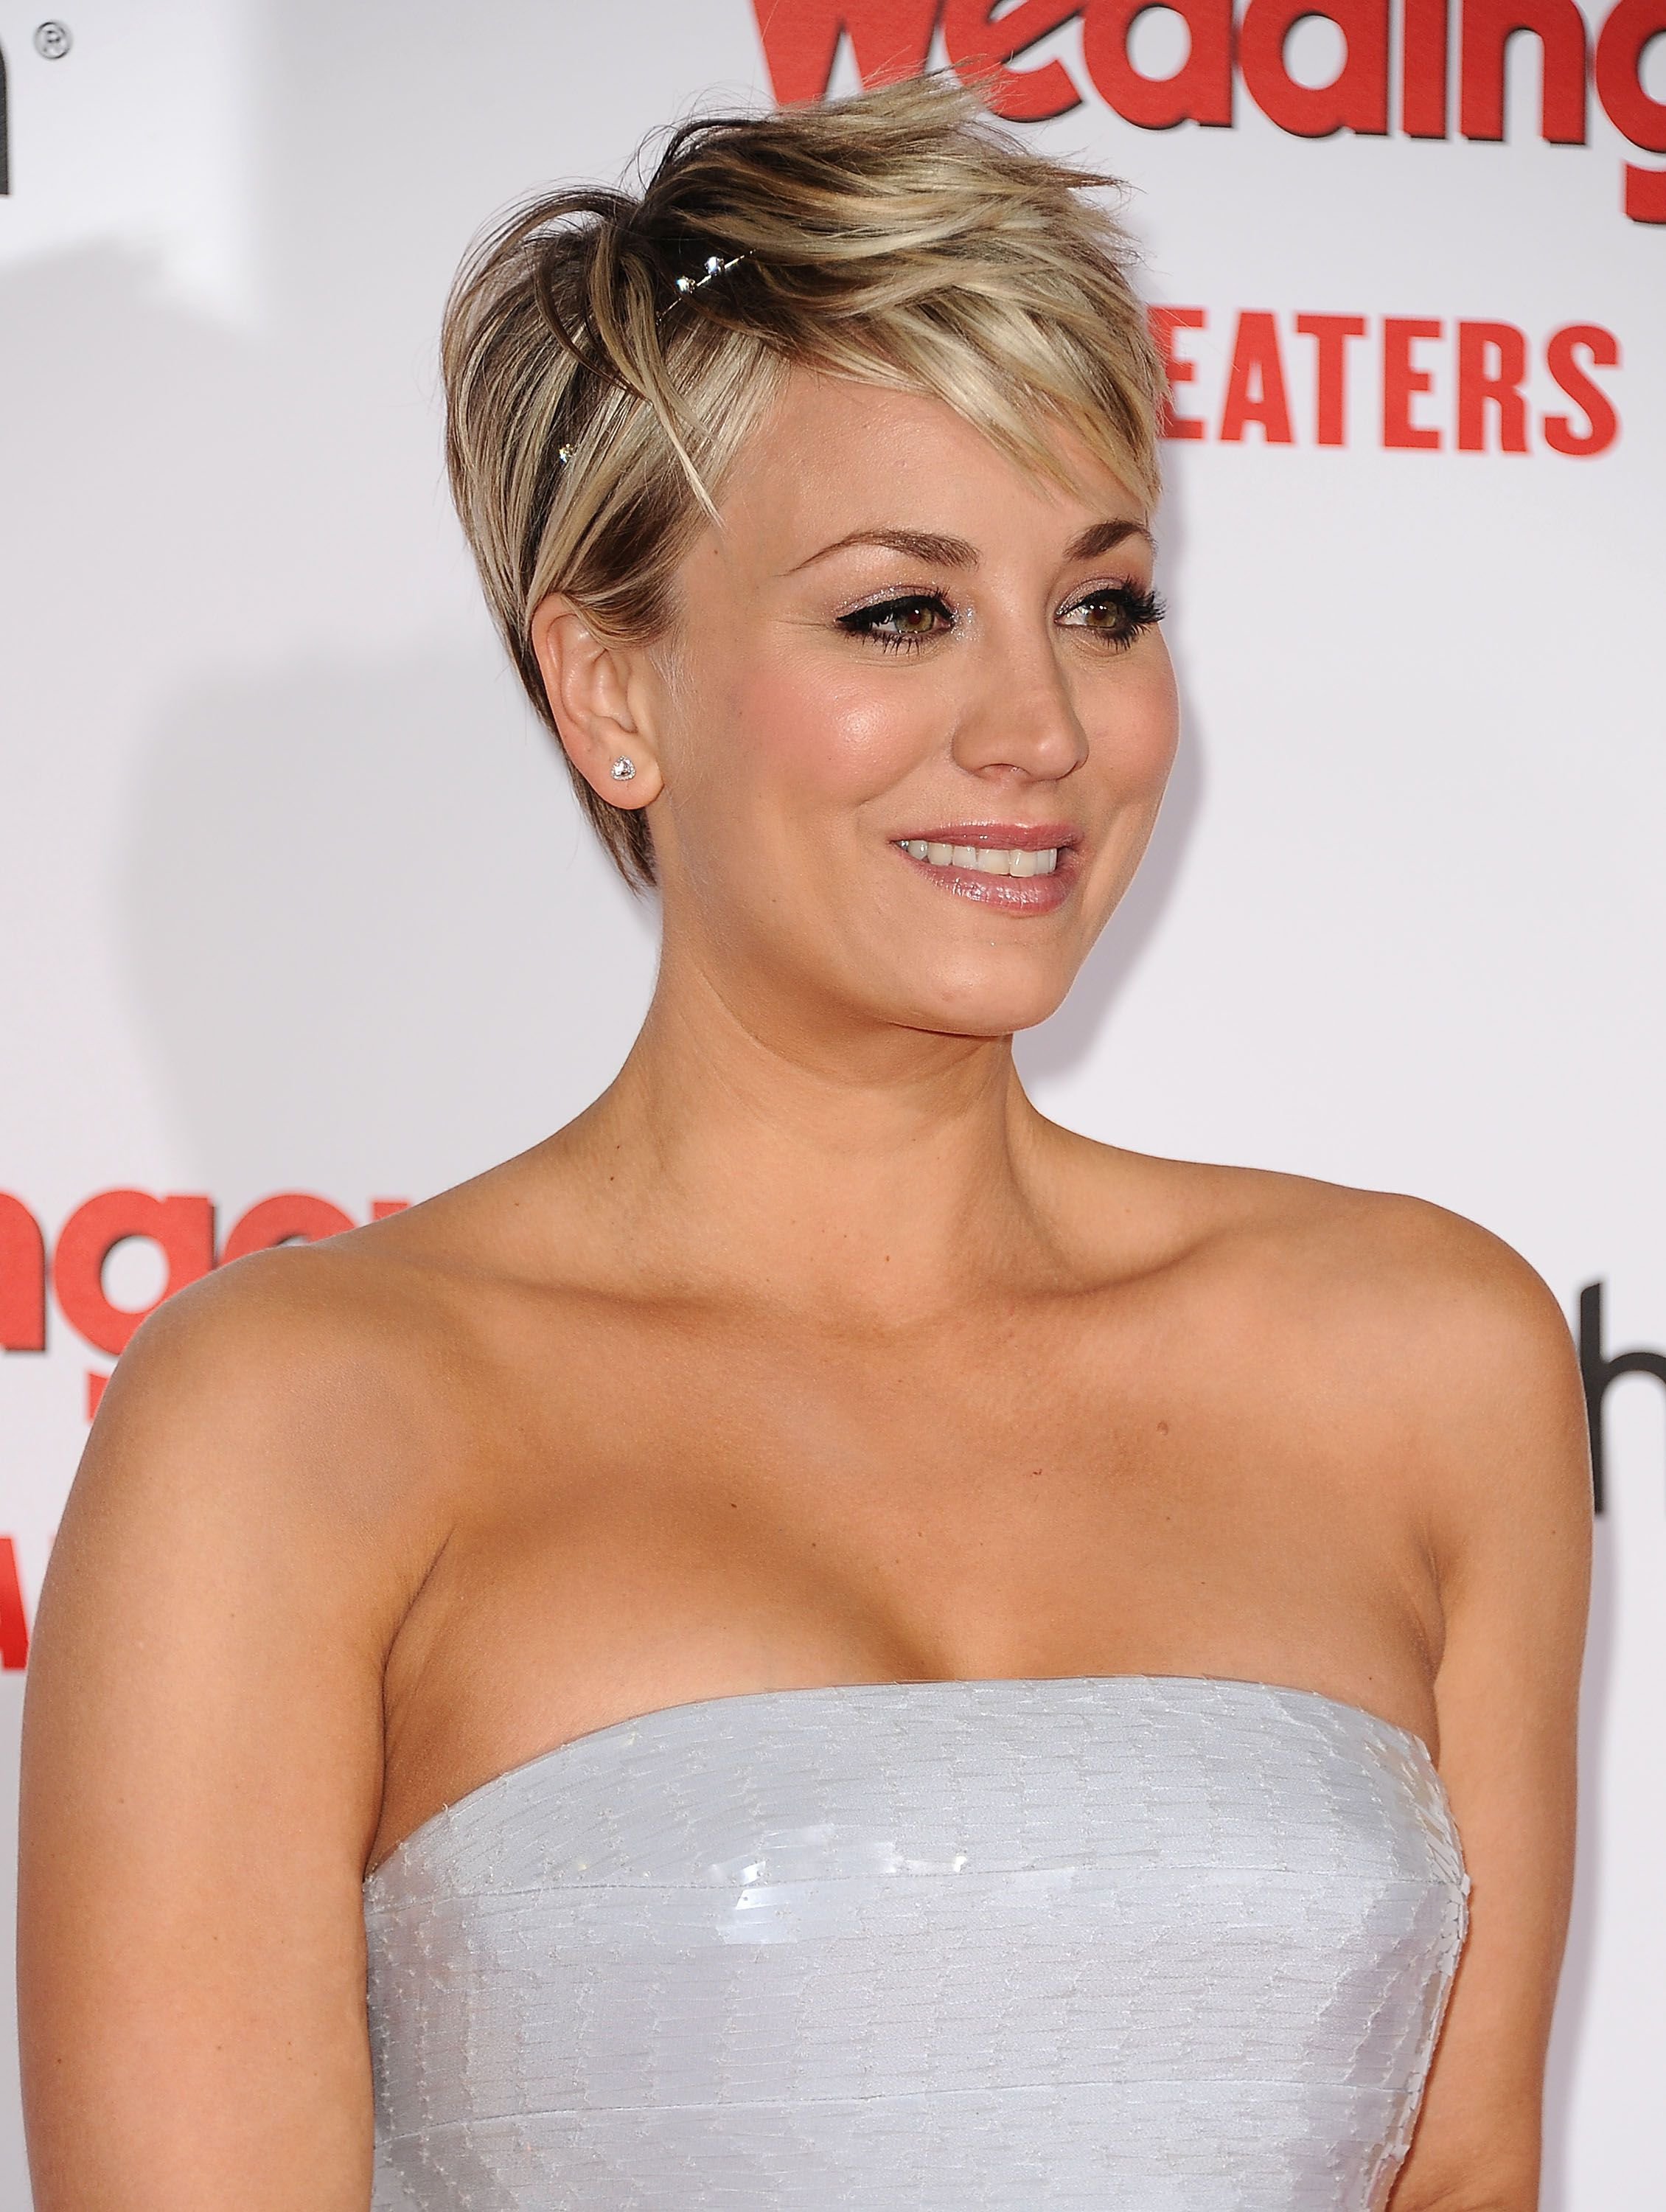 Pixie Cuts For 2020 34 Celebrity Hairstyle Ideas For Women